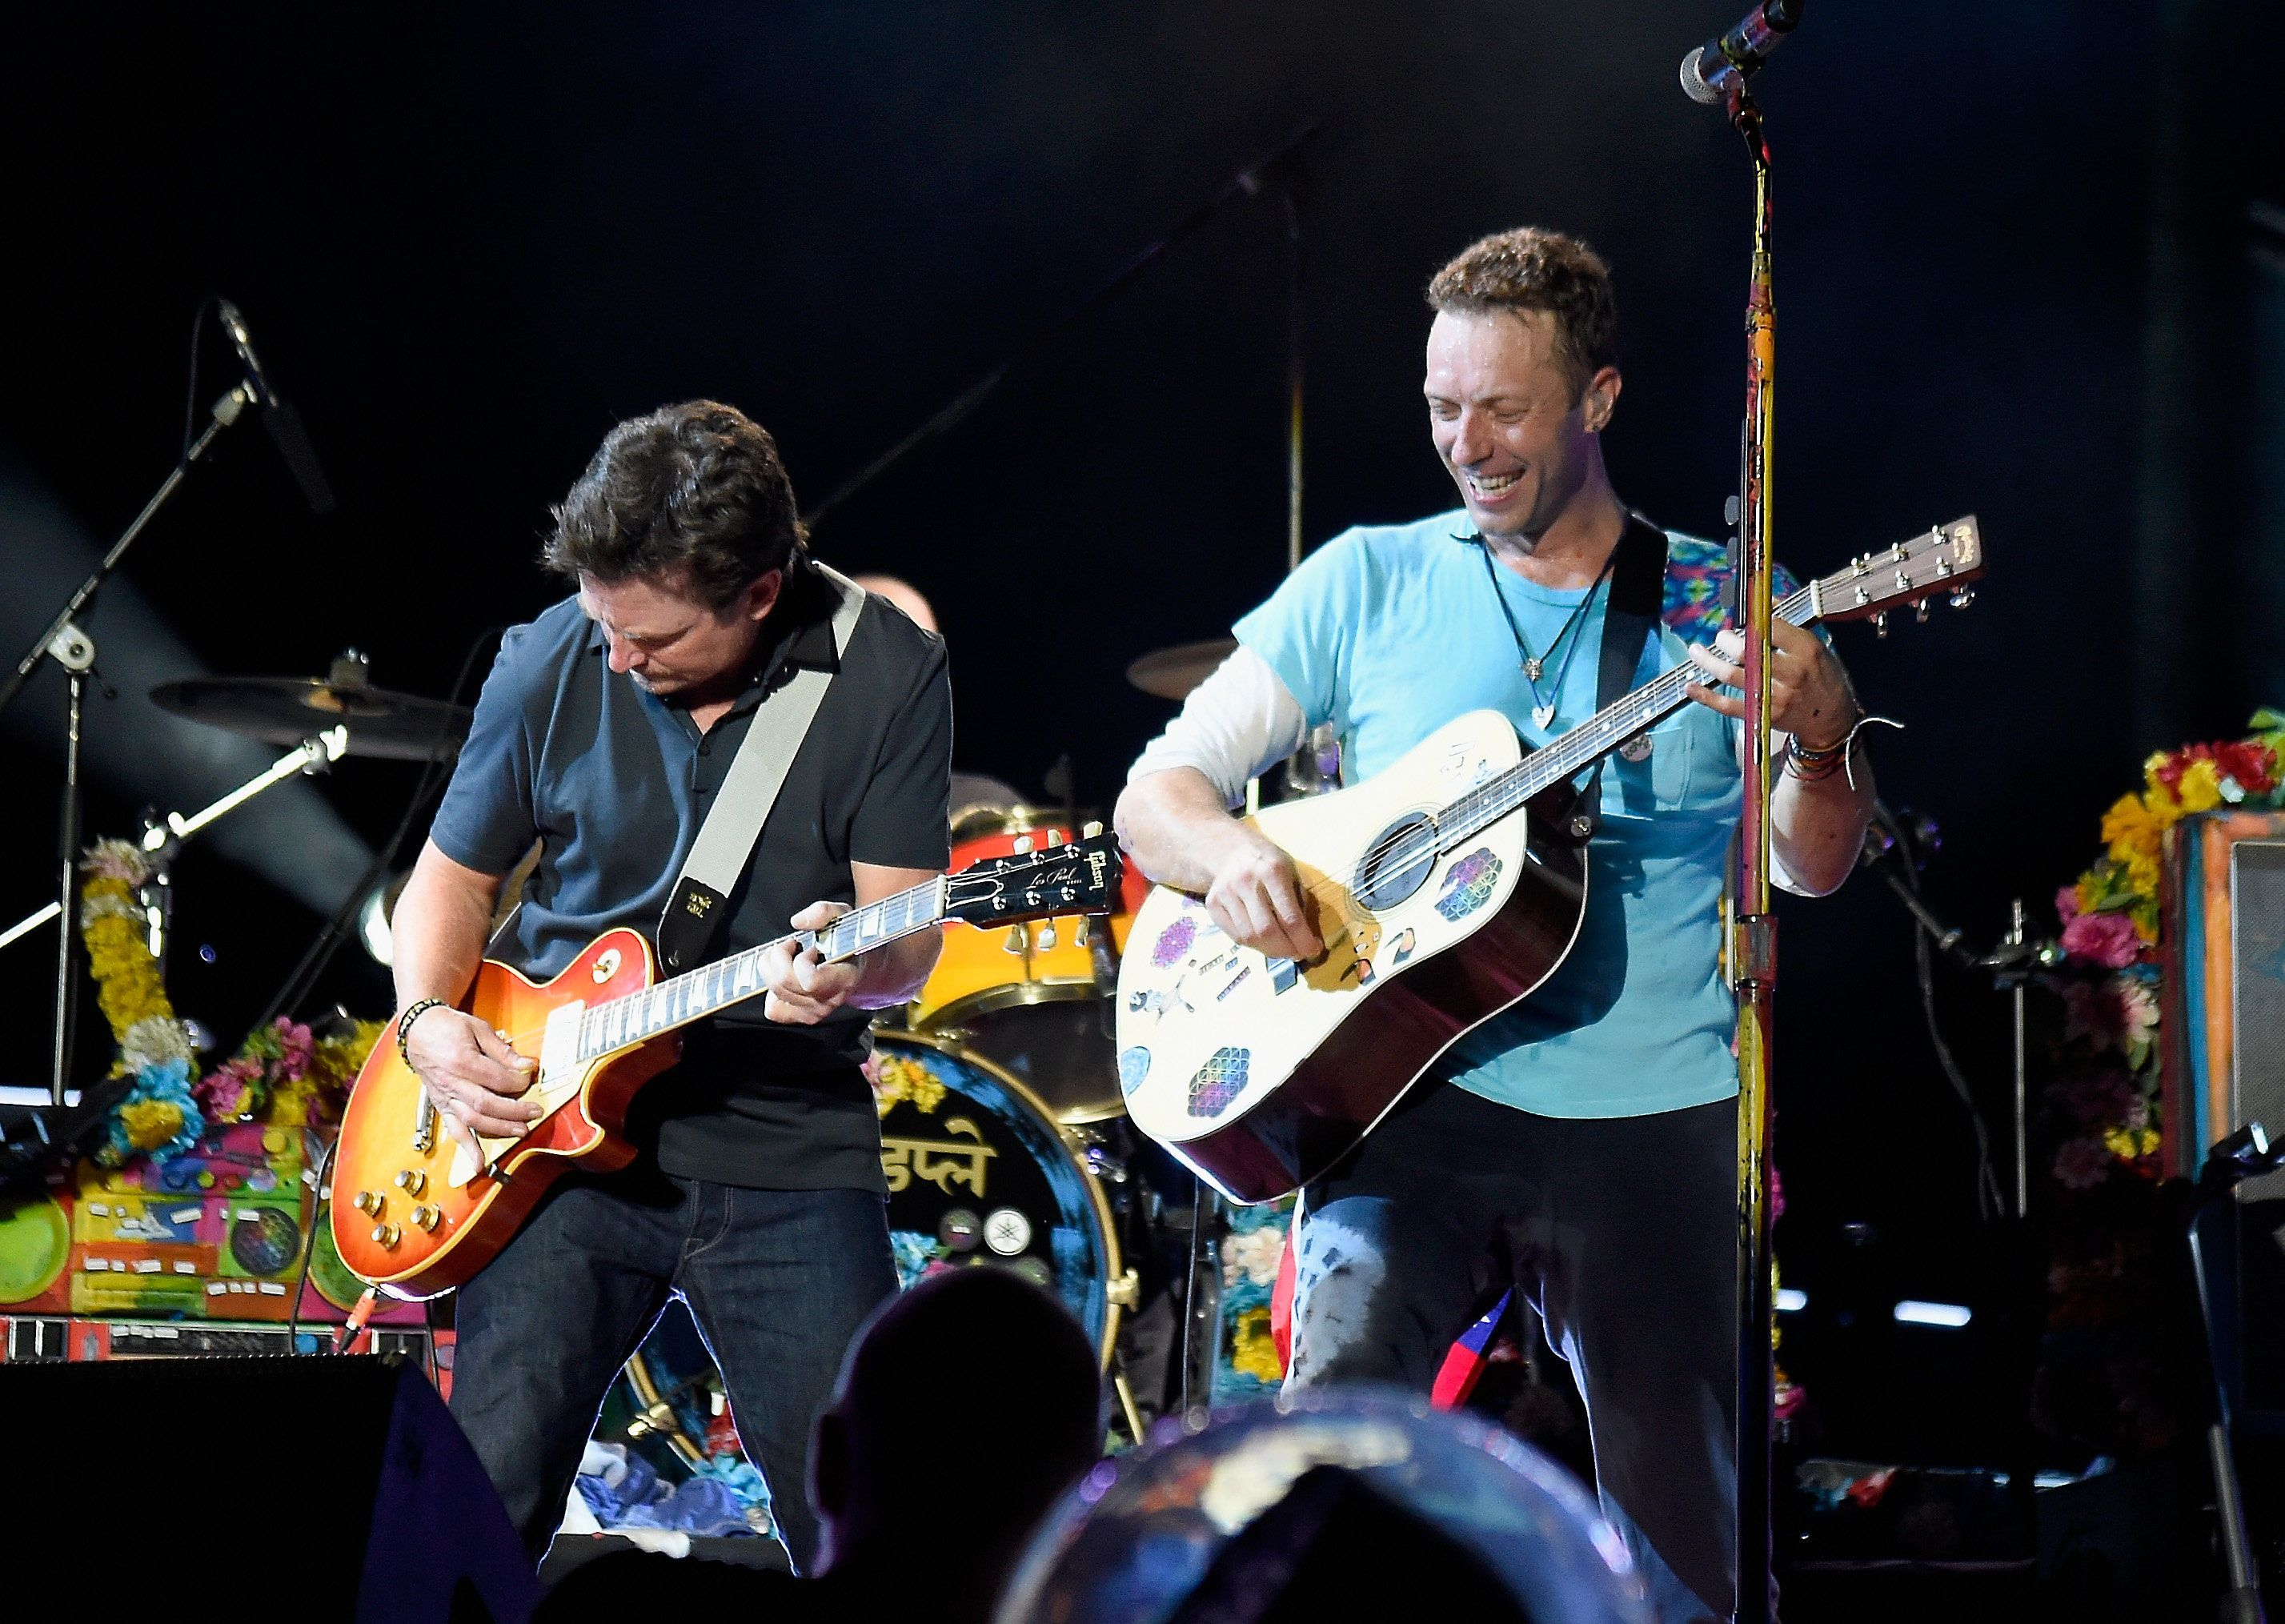 EAST RUTHERFORD, NJ - JULY 17:  Actor Michael J. Fox (L) performs onstage with recording artist Chris Martin of Coldplay during the Coldplay 'A Head Full of Dreams' Tour at MetLife Stadium on July 17, 2016 in East Rutherford, New Jersey.  (Photo by Kevin Mazur/Getty Images for Atlantic Records)